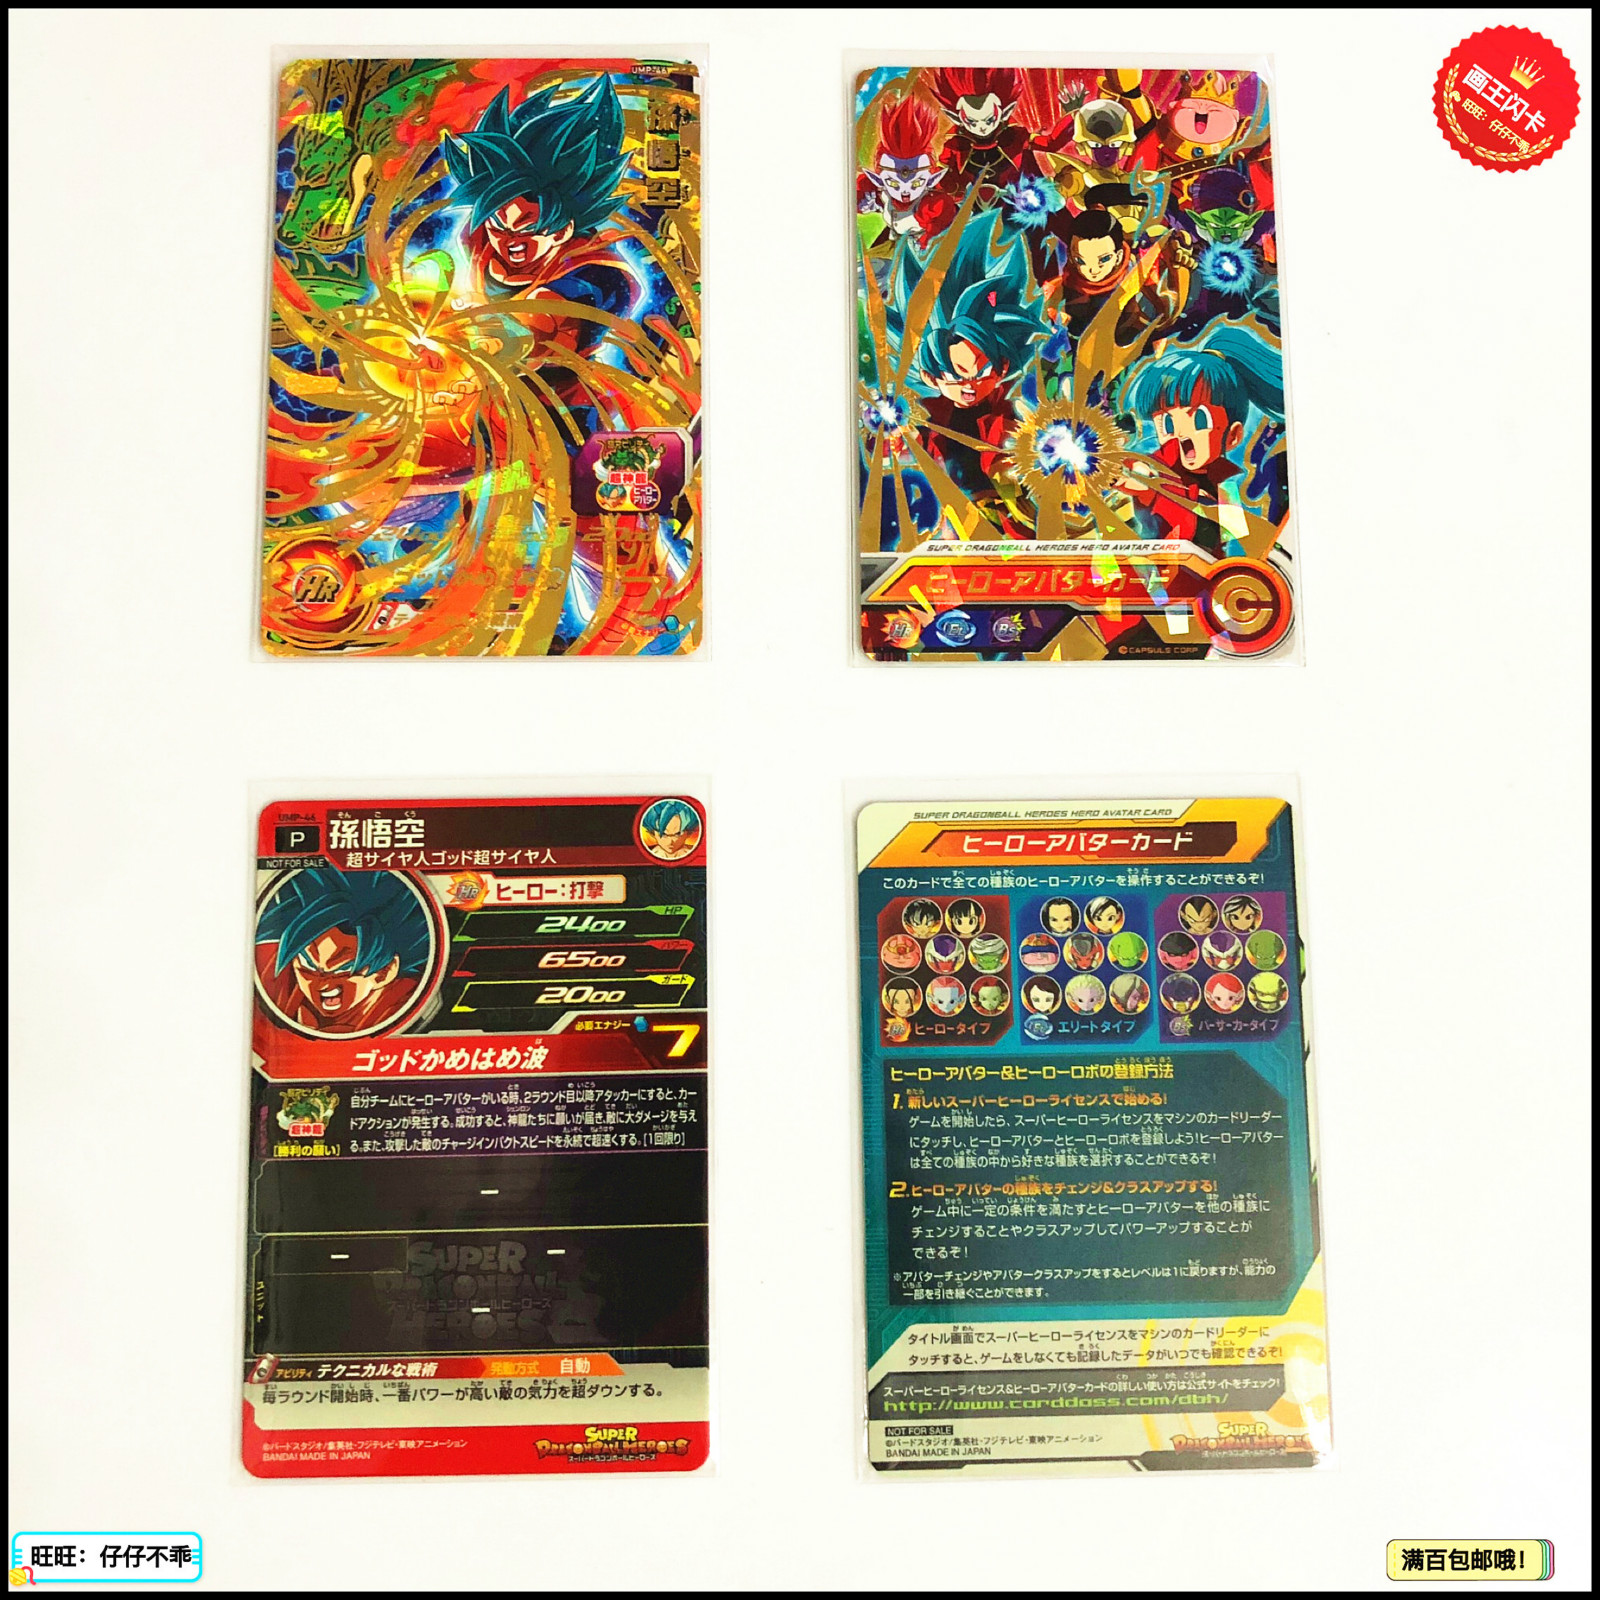 Japan Original Dragon Ball Hero Card UMP 46Goku Toys Hobbies Collectibles Game Collection Anime Cards